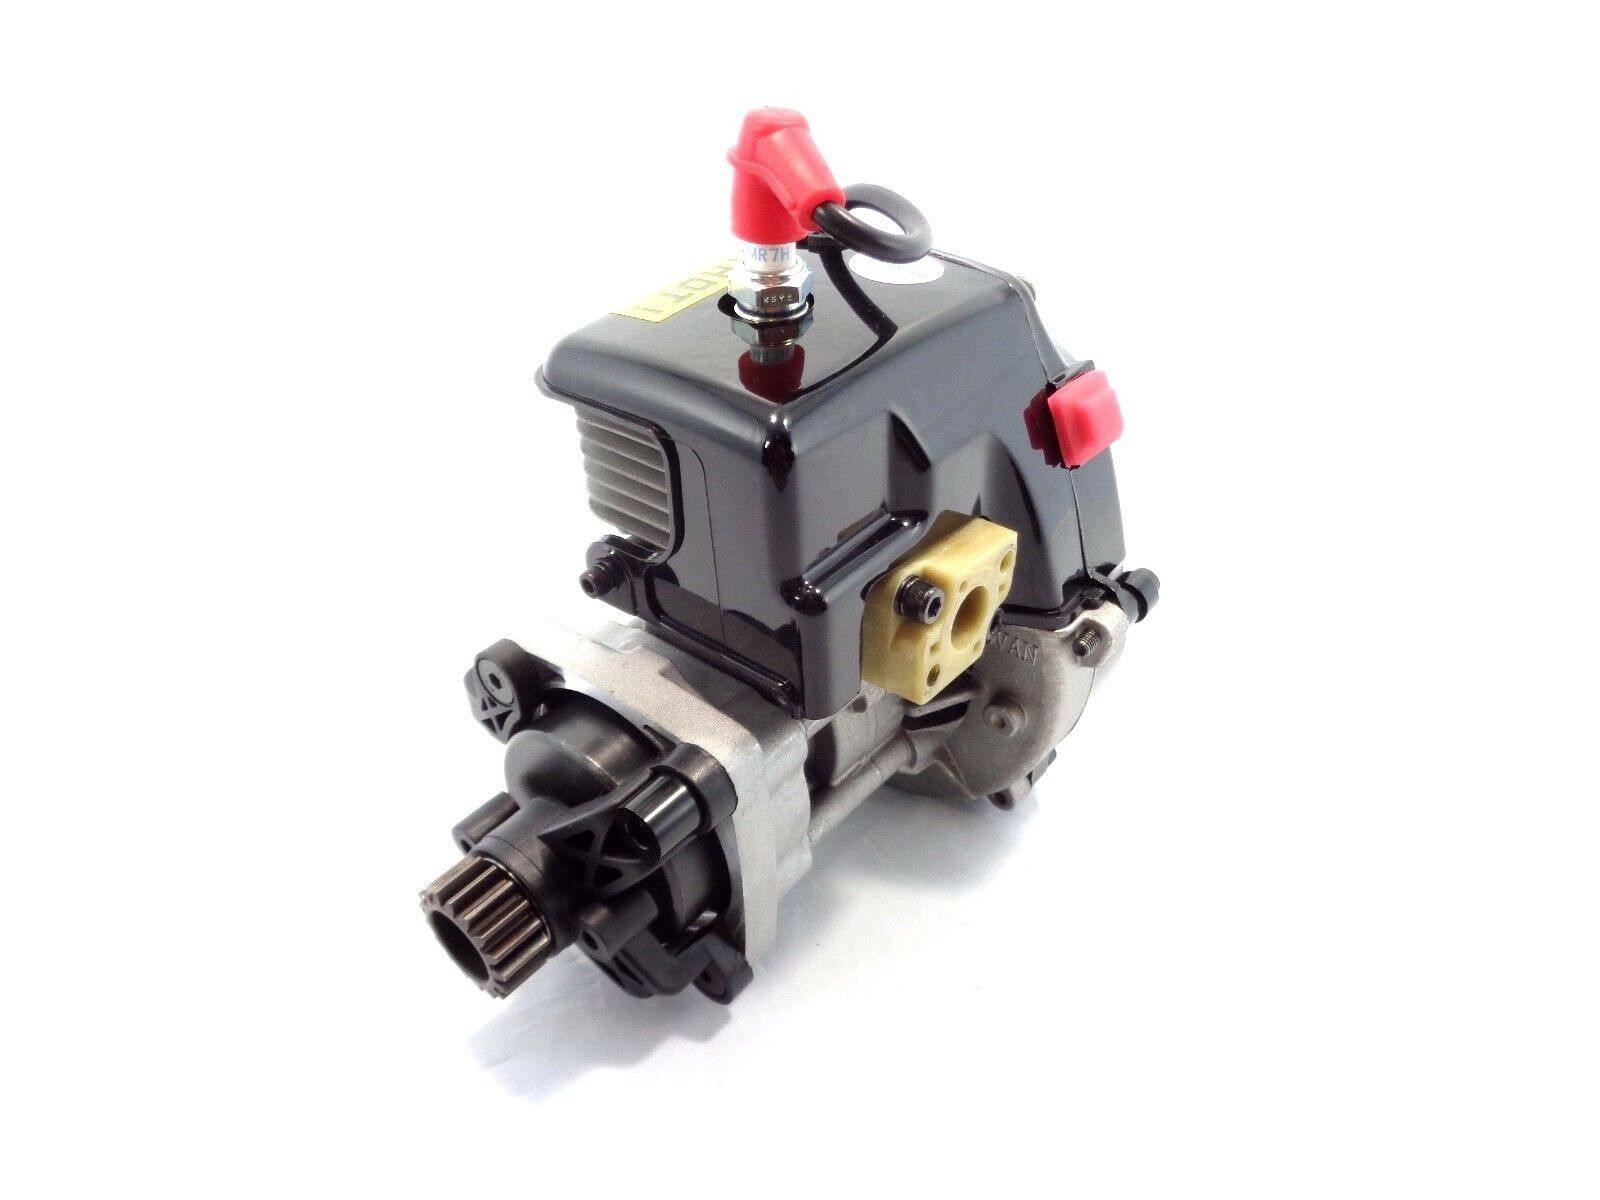 NEW ROVAN 30.5cc COMPLETE ENGINE MOTOR WITH CLUTCH  HPI BAJA 5B KING MOTOR